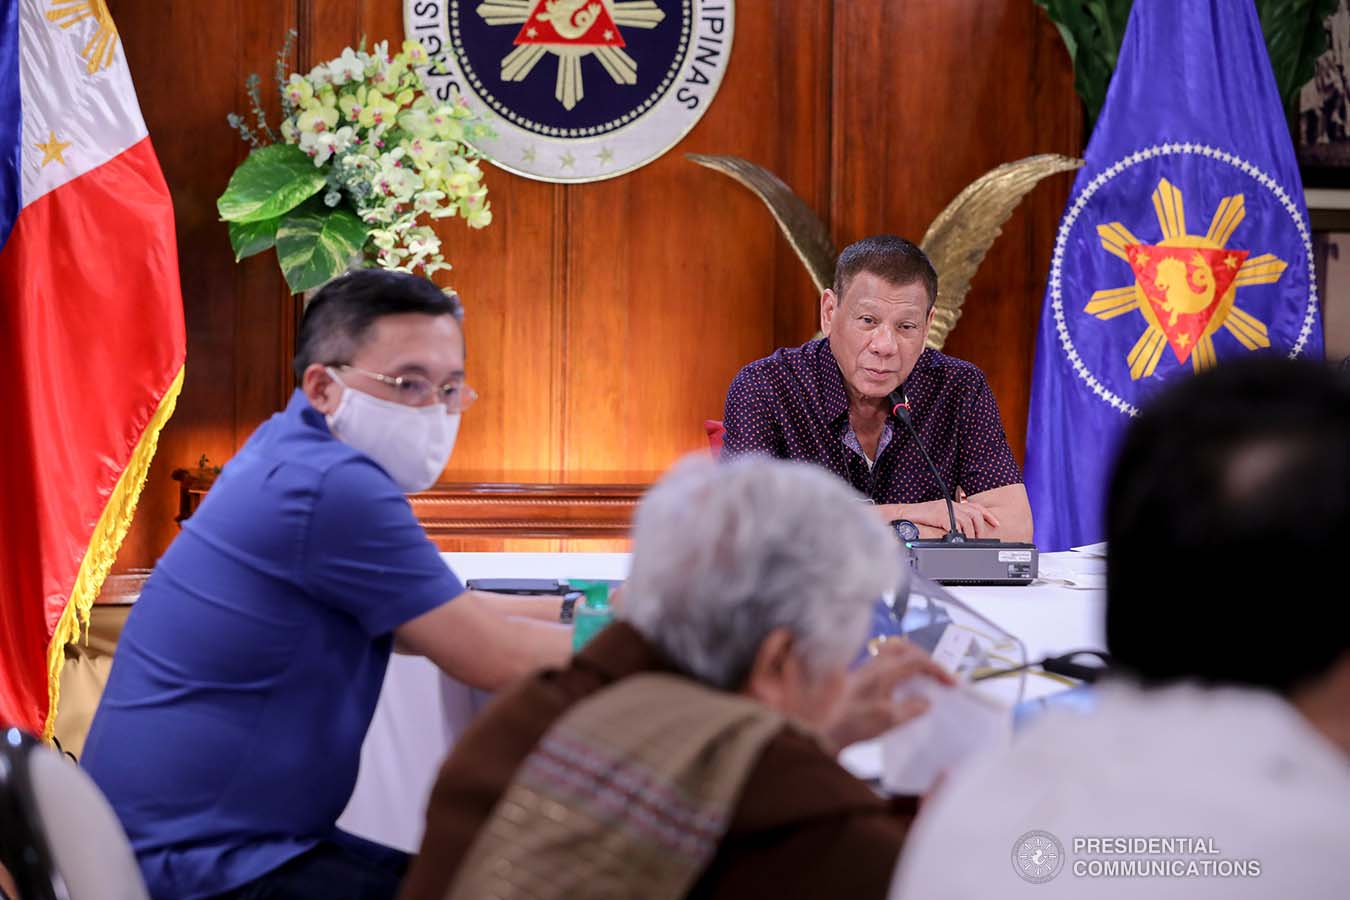 President Rodrigo Roa Duterte talks to the people after holding a meeting with the Inter-Agency Task Force on the Emerging Infectious Diseases (IATF-EID) core members at the Malago Clubhouse in Malacañang on July 21, 2020. ROBINSON NIÑAL JR./PRESIDENTIAL PHOTO